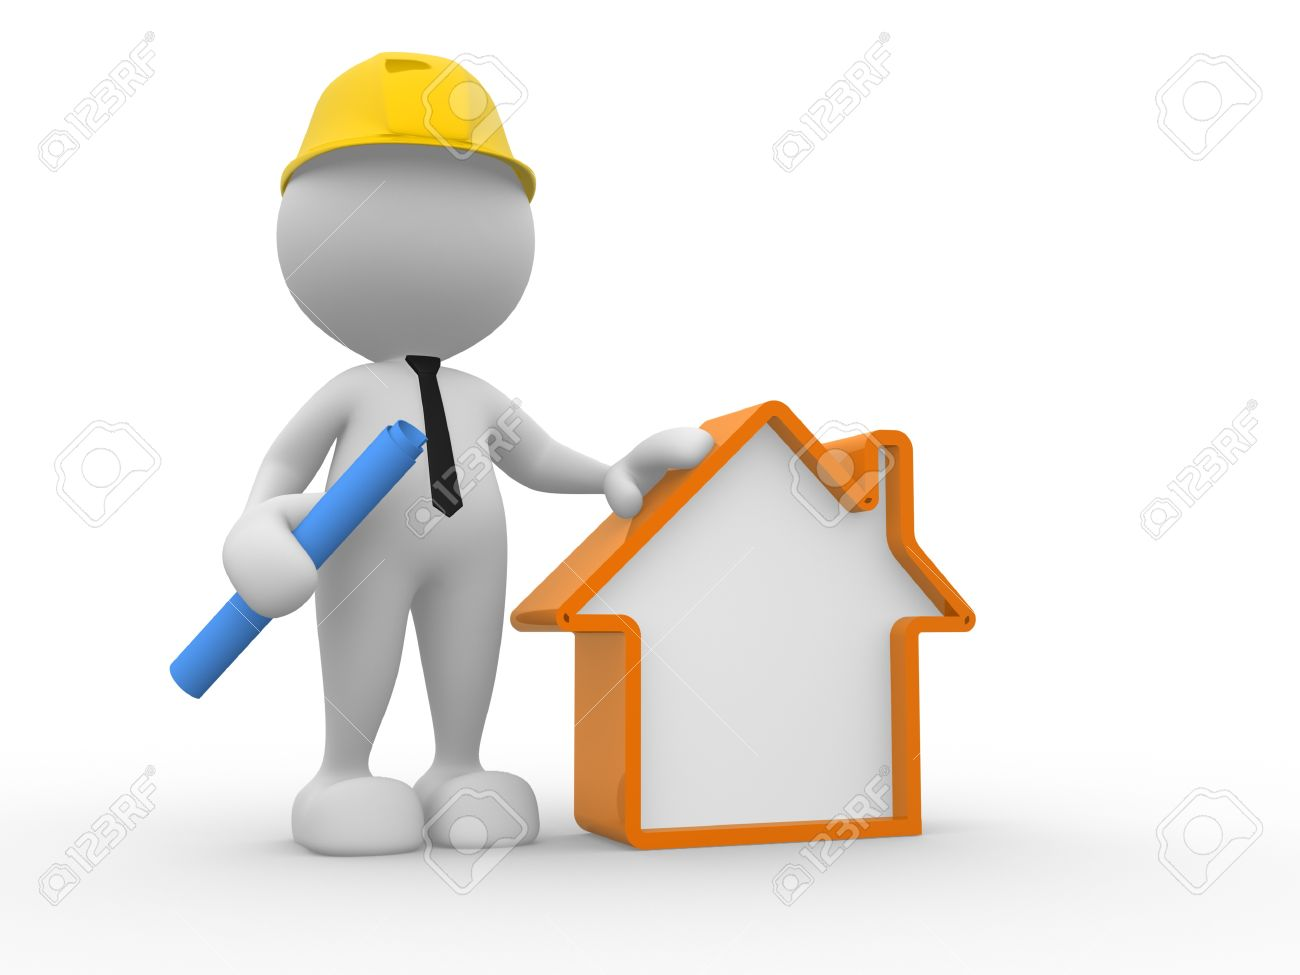 3d people - man, person with a house. Builder Stock Photo - 15588167